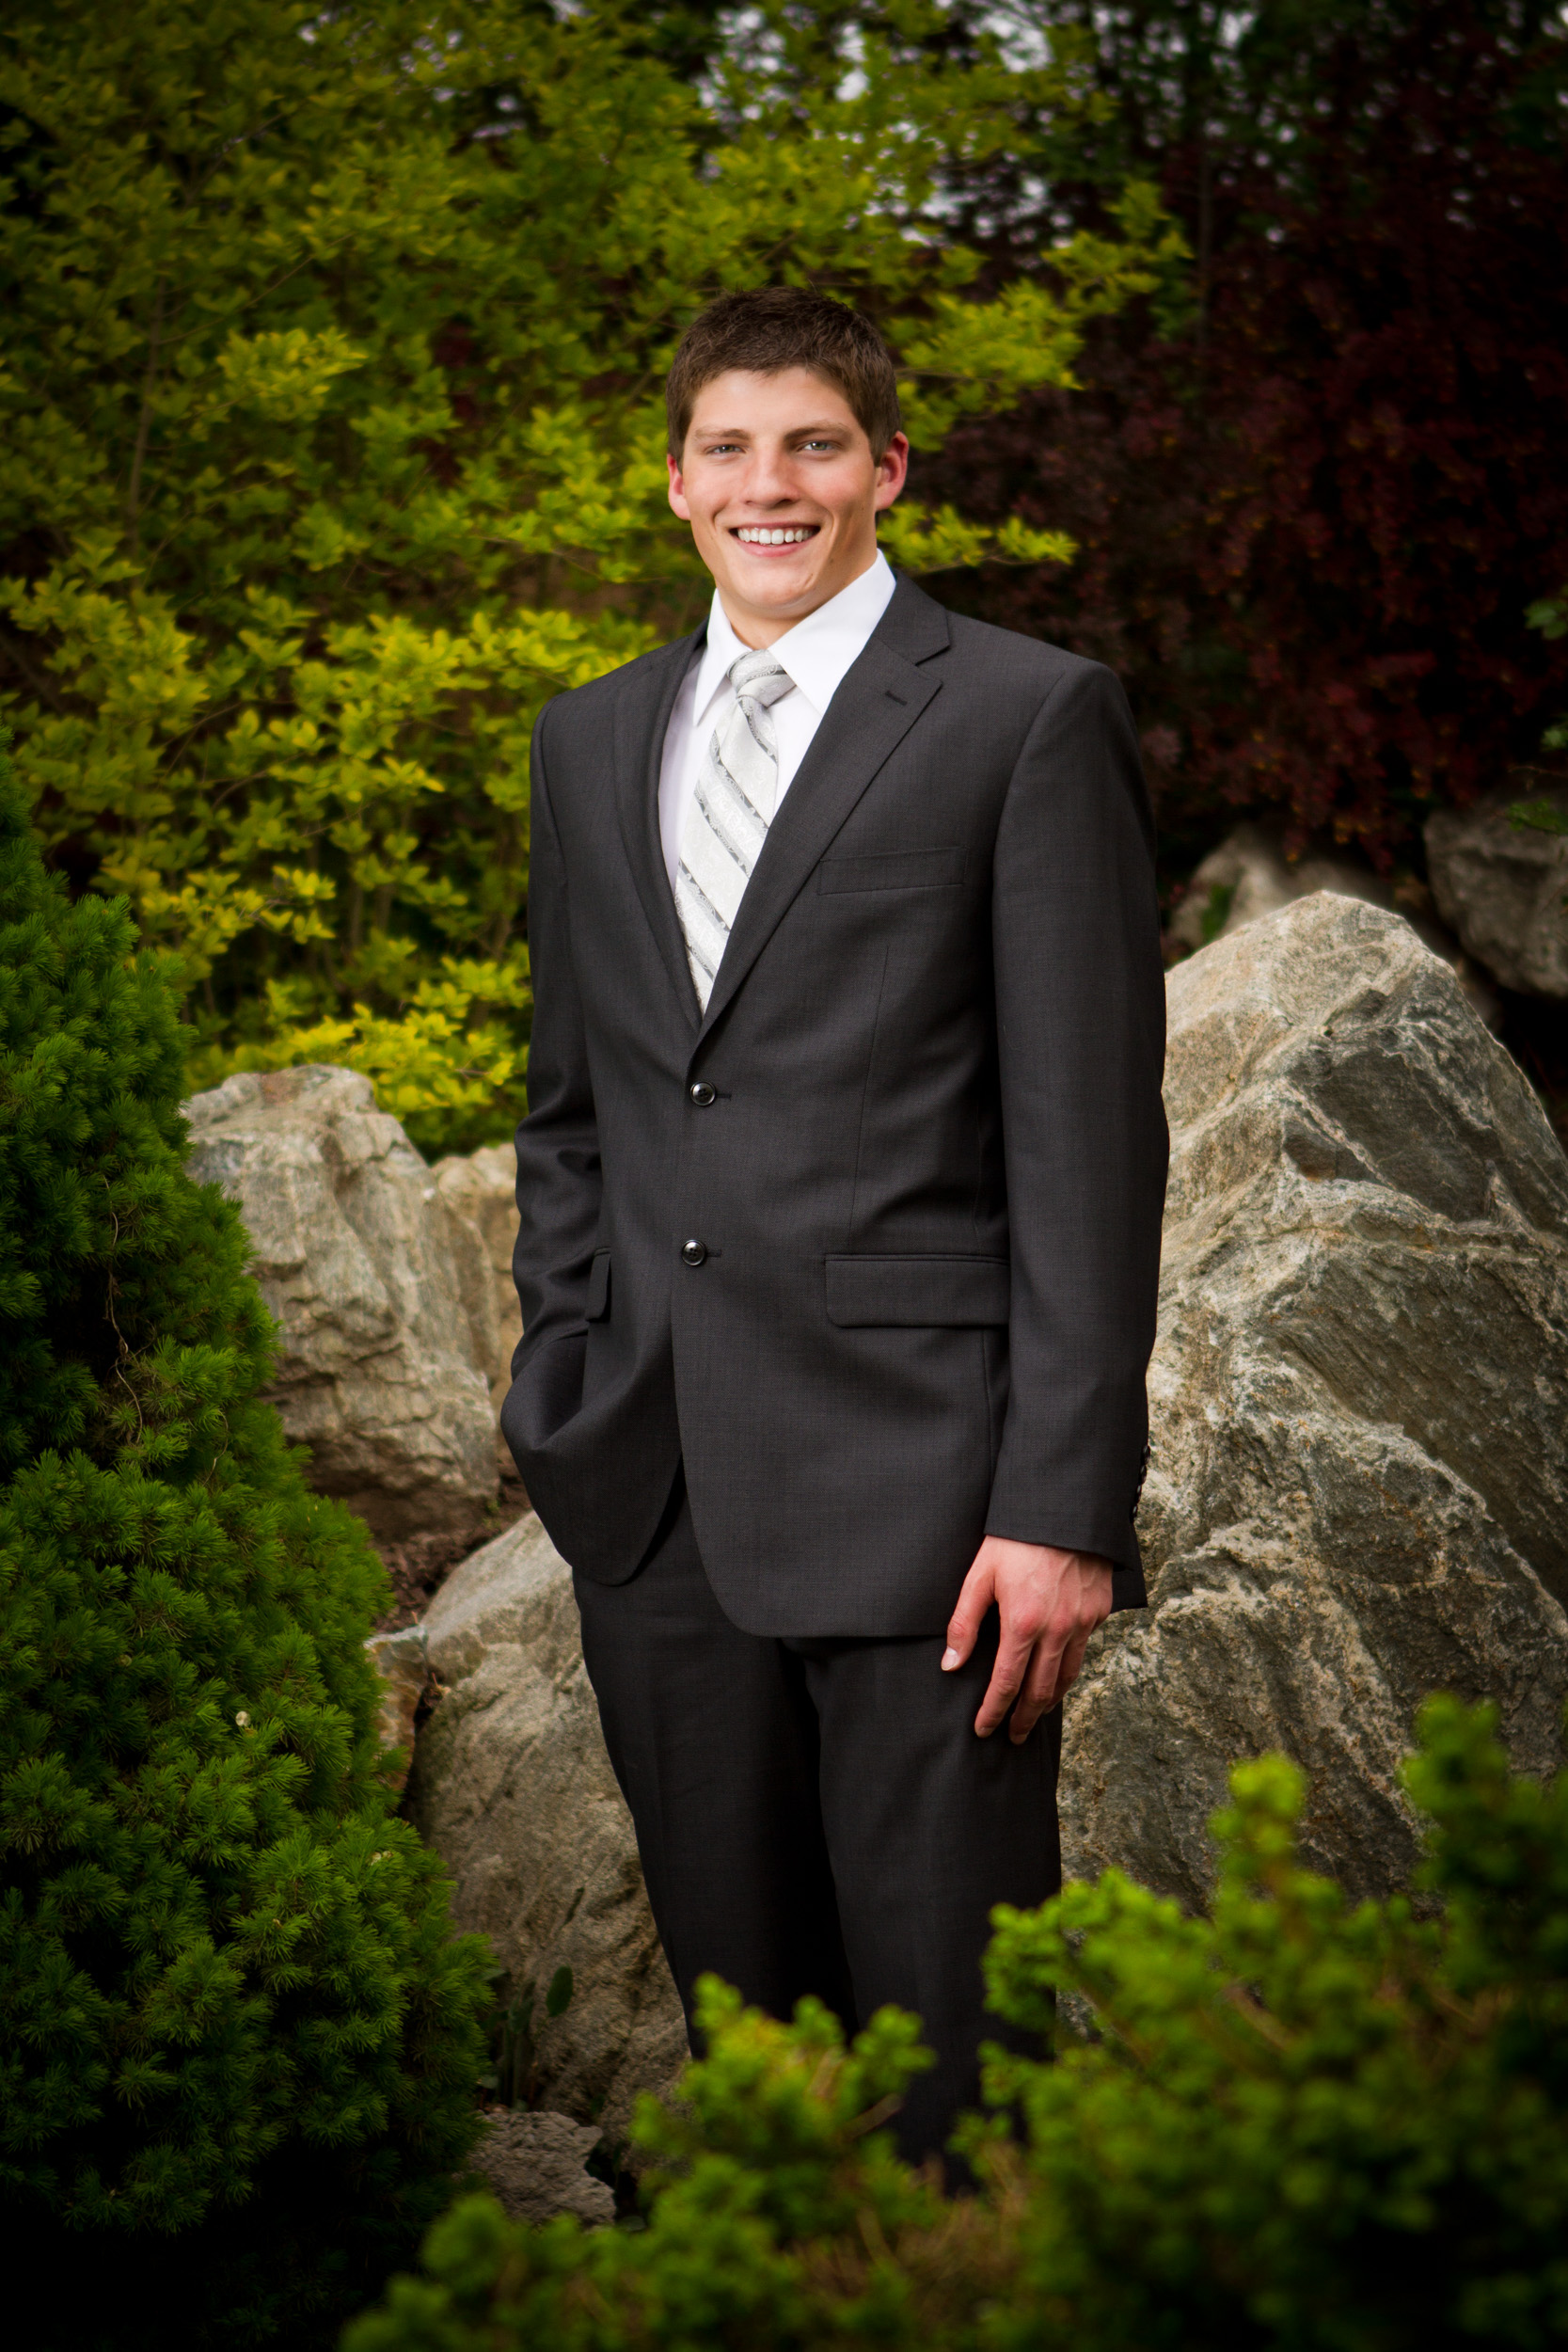 utah_senior_portrait_photographer_005.jpg